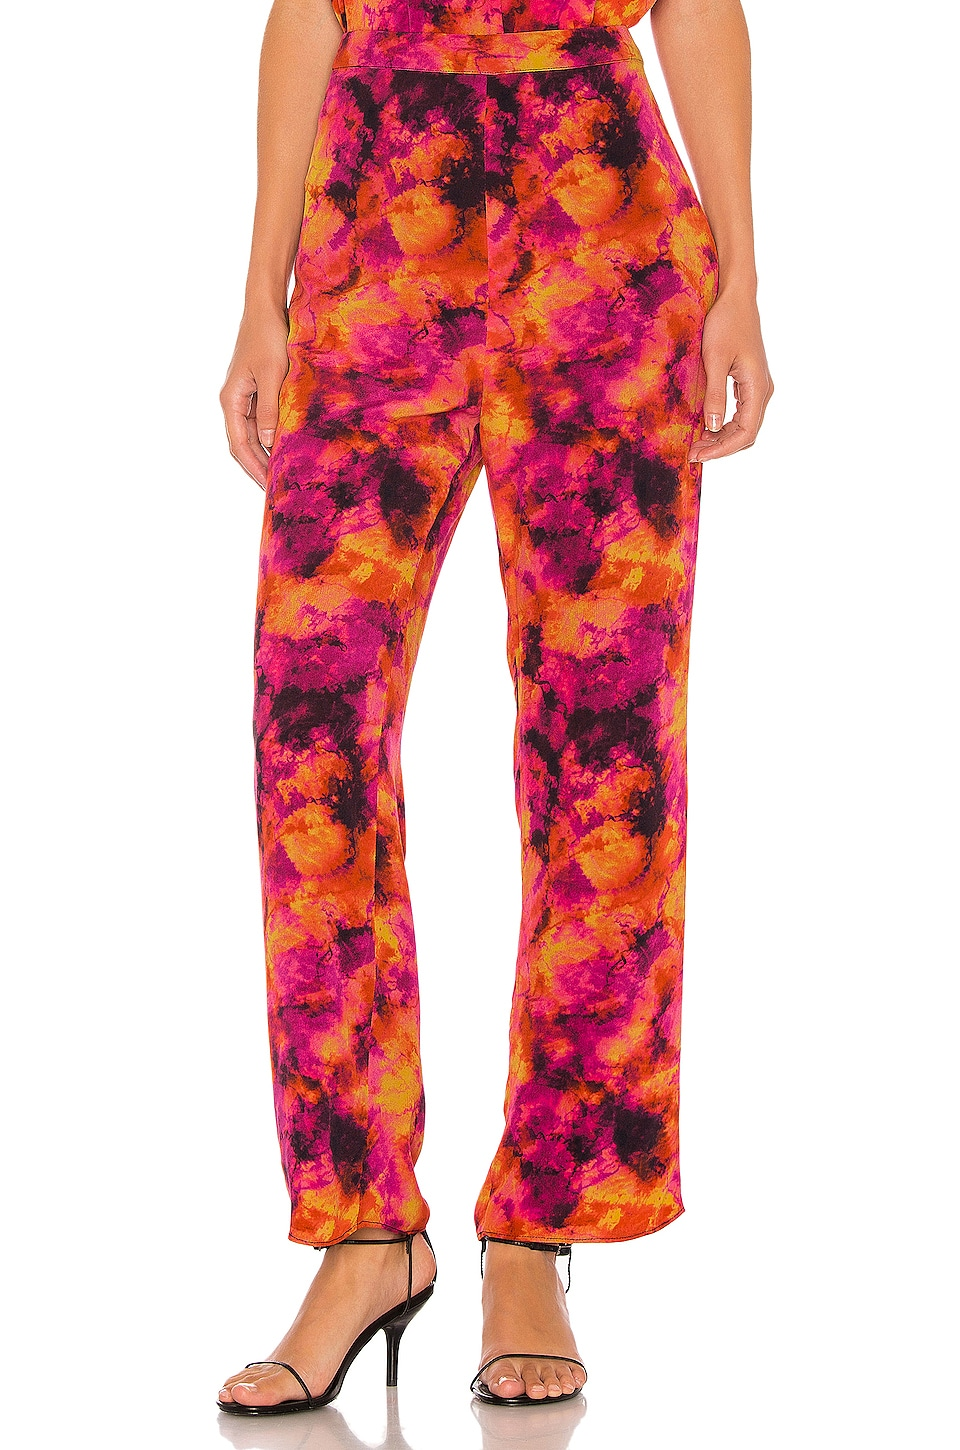 Song of Style Cora Pant in Sunburst Multi